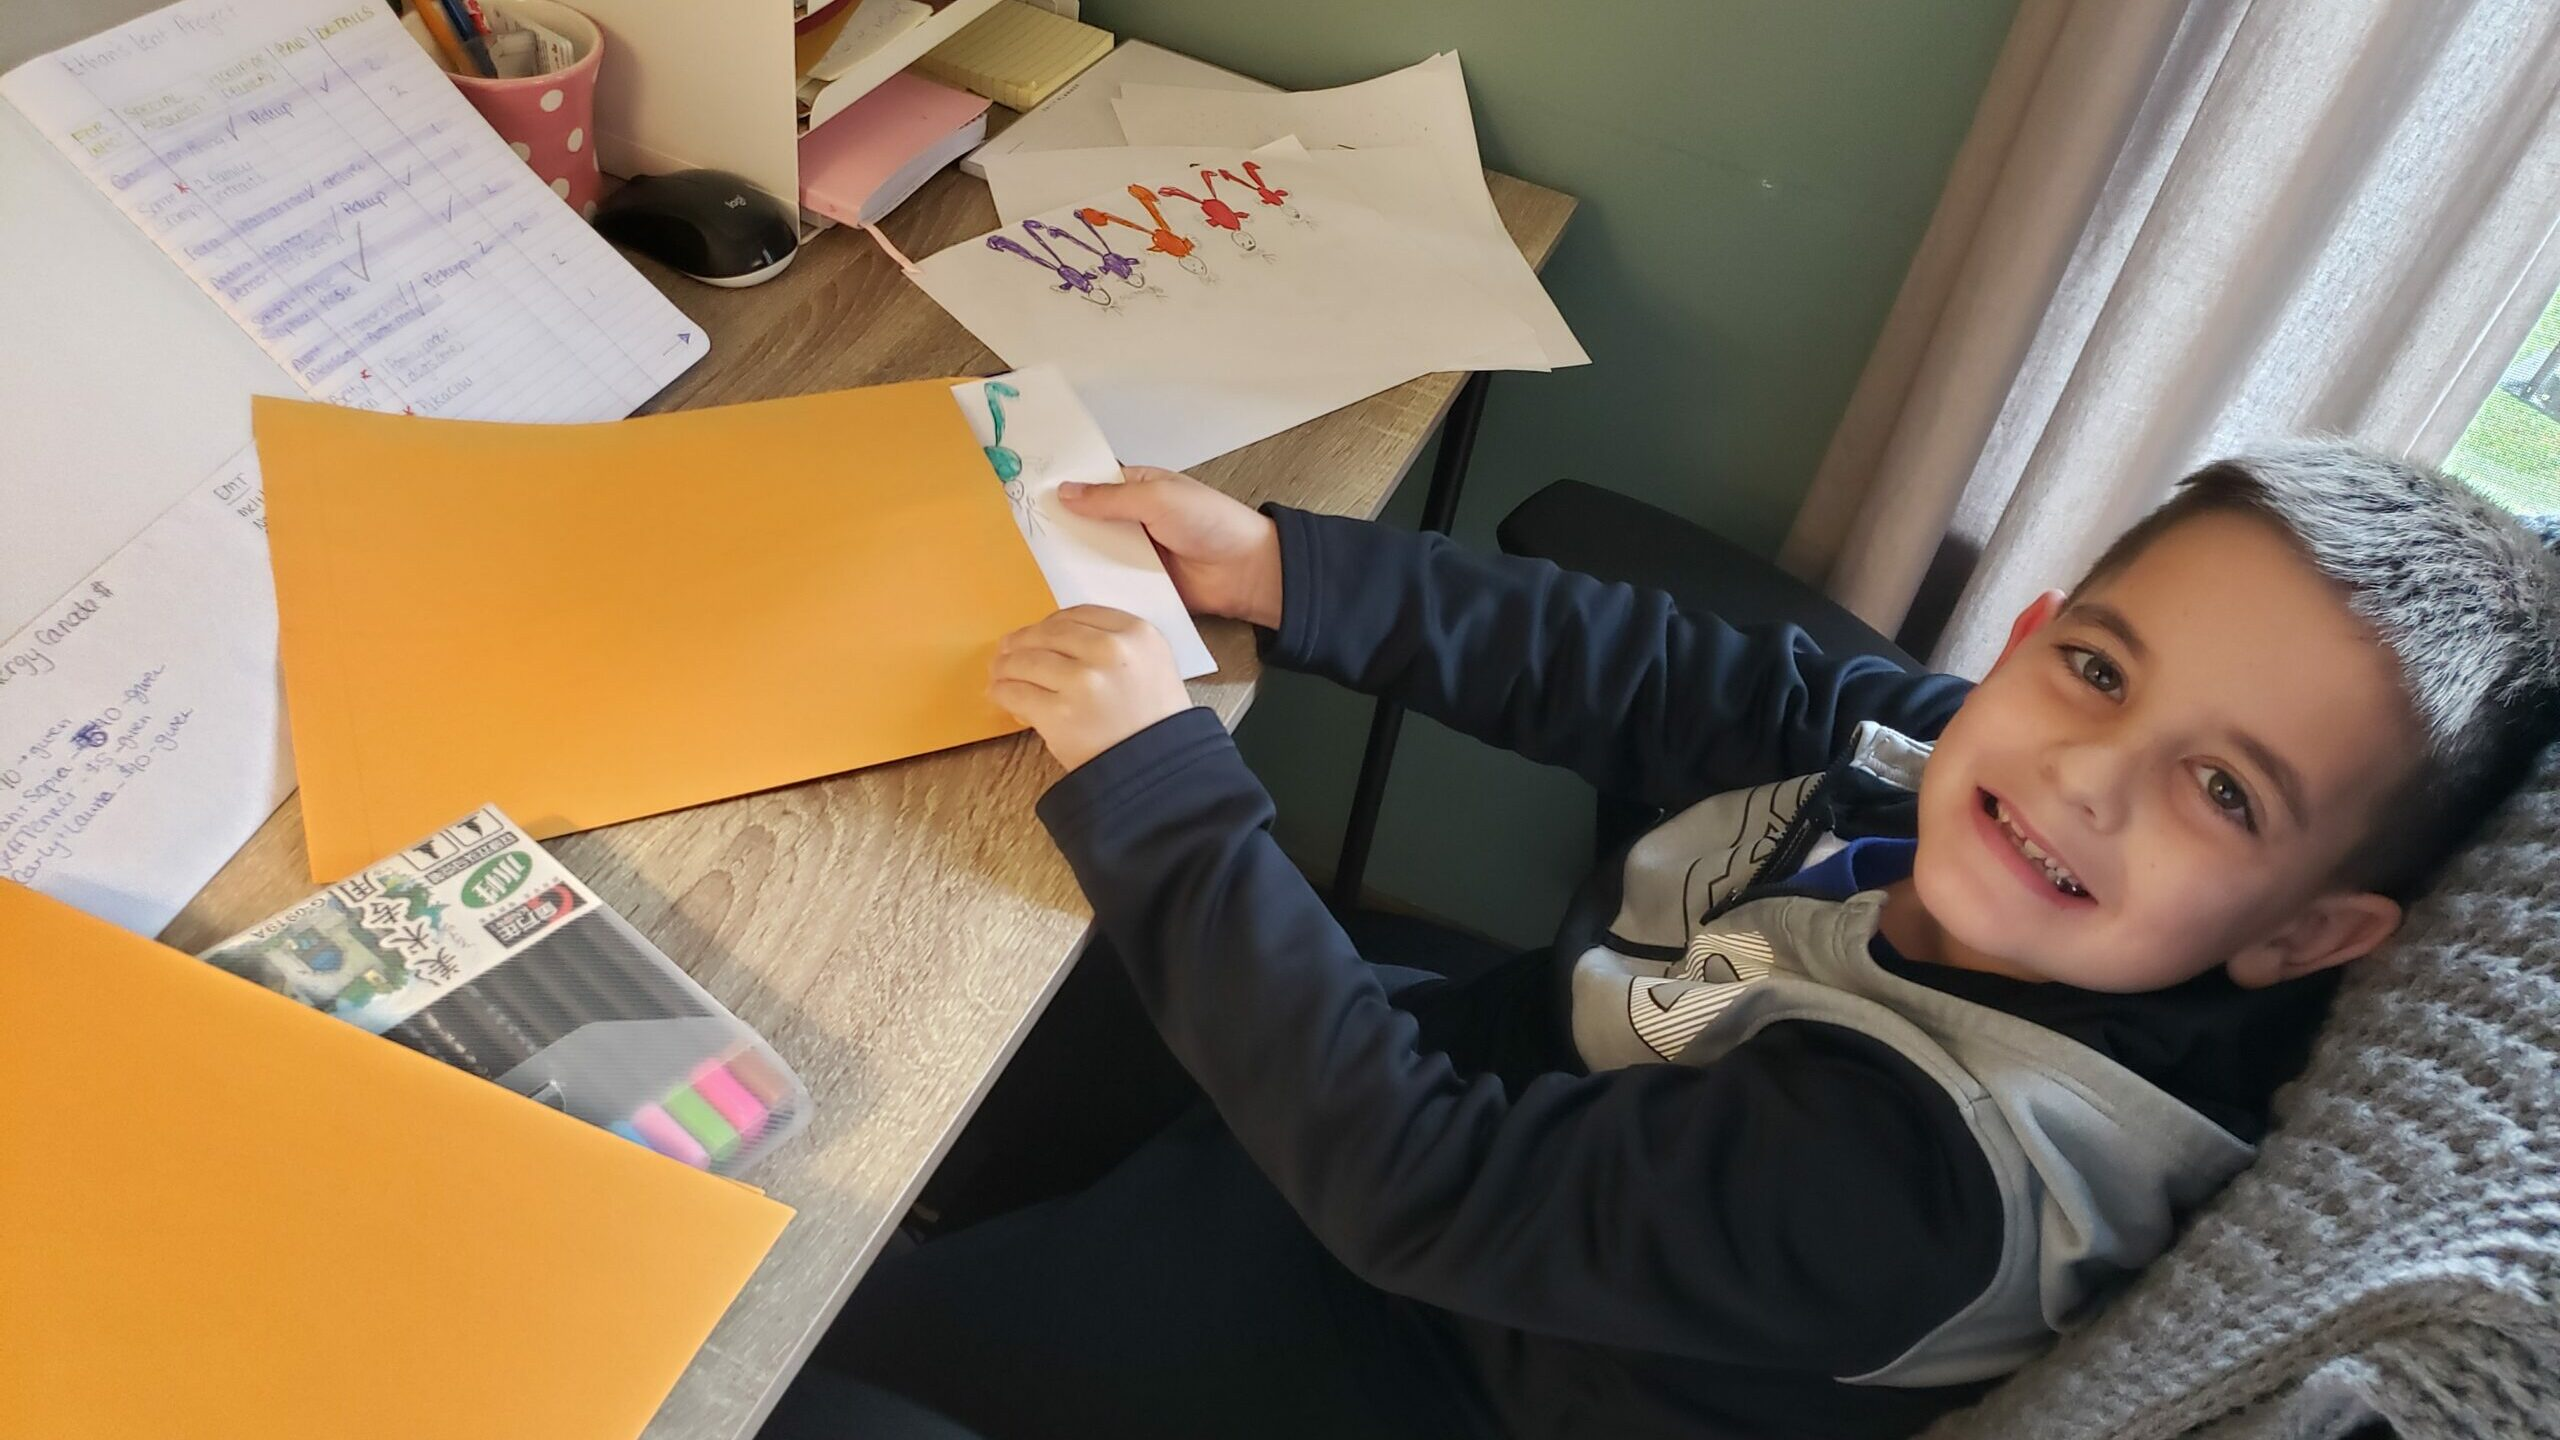 Ethan packaging his artwork, age 7